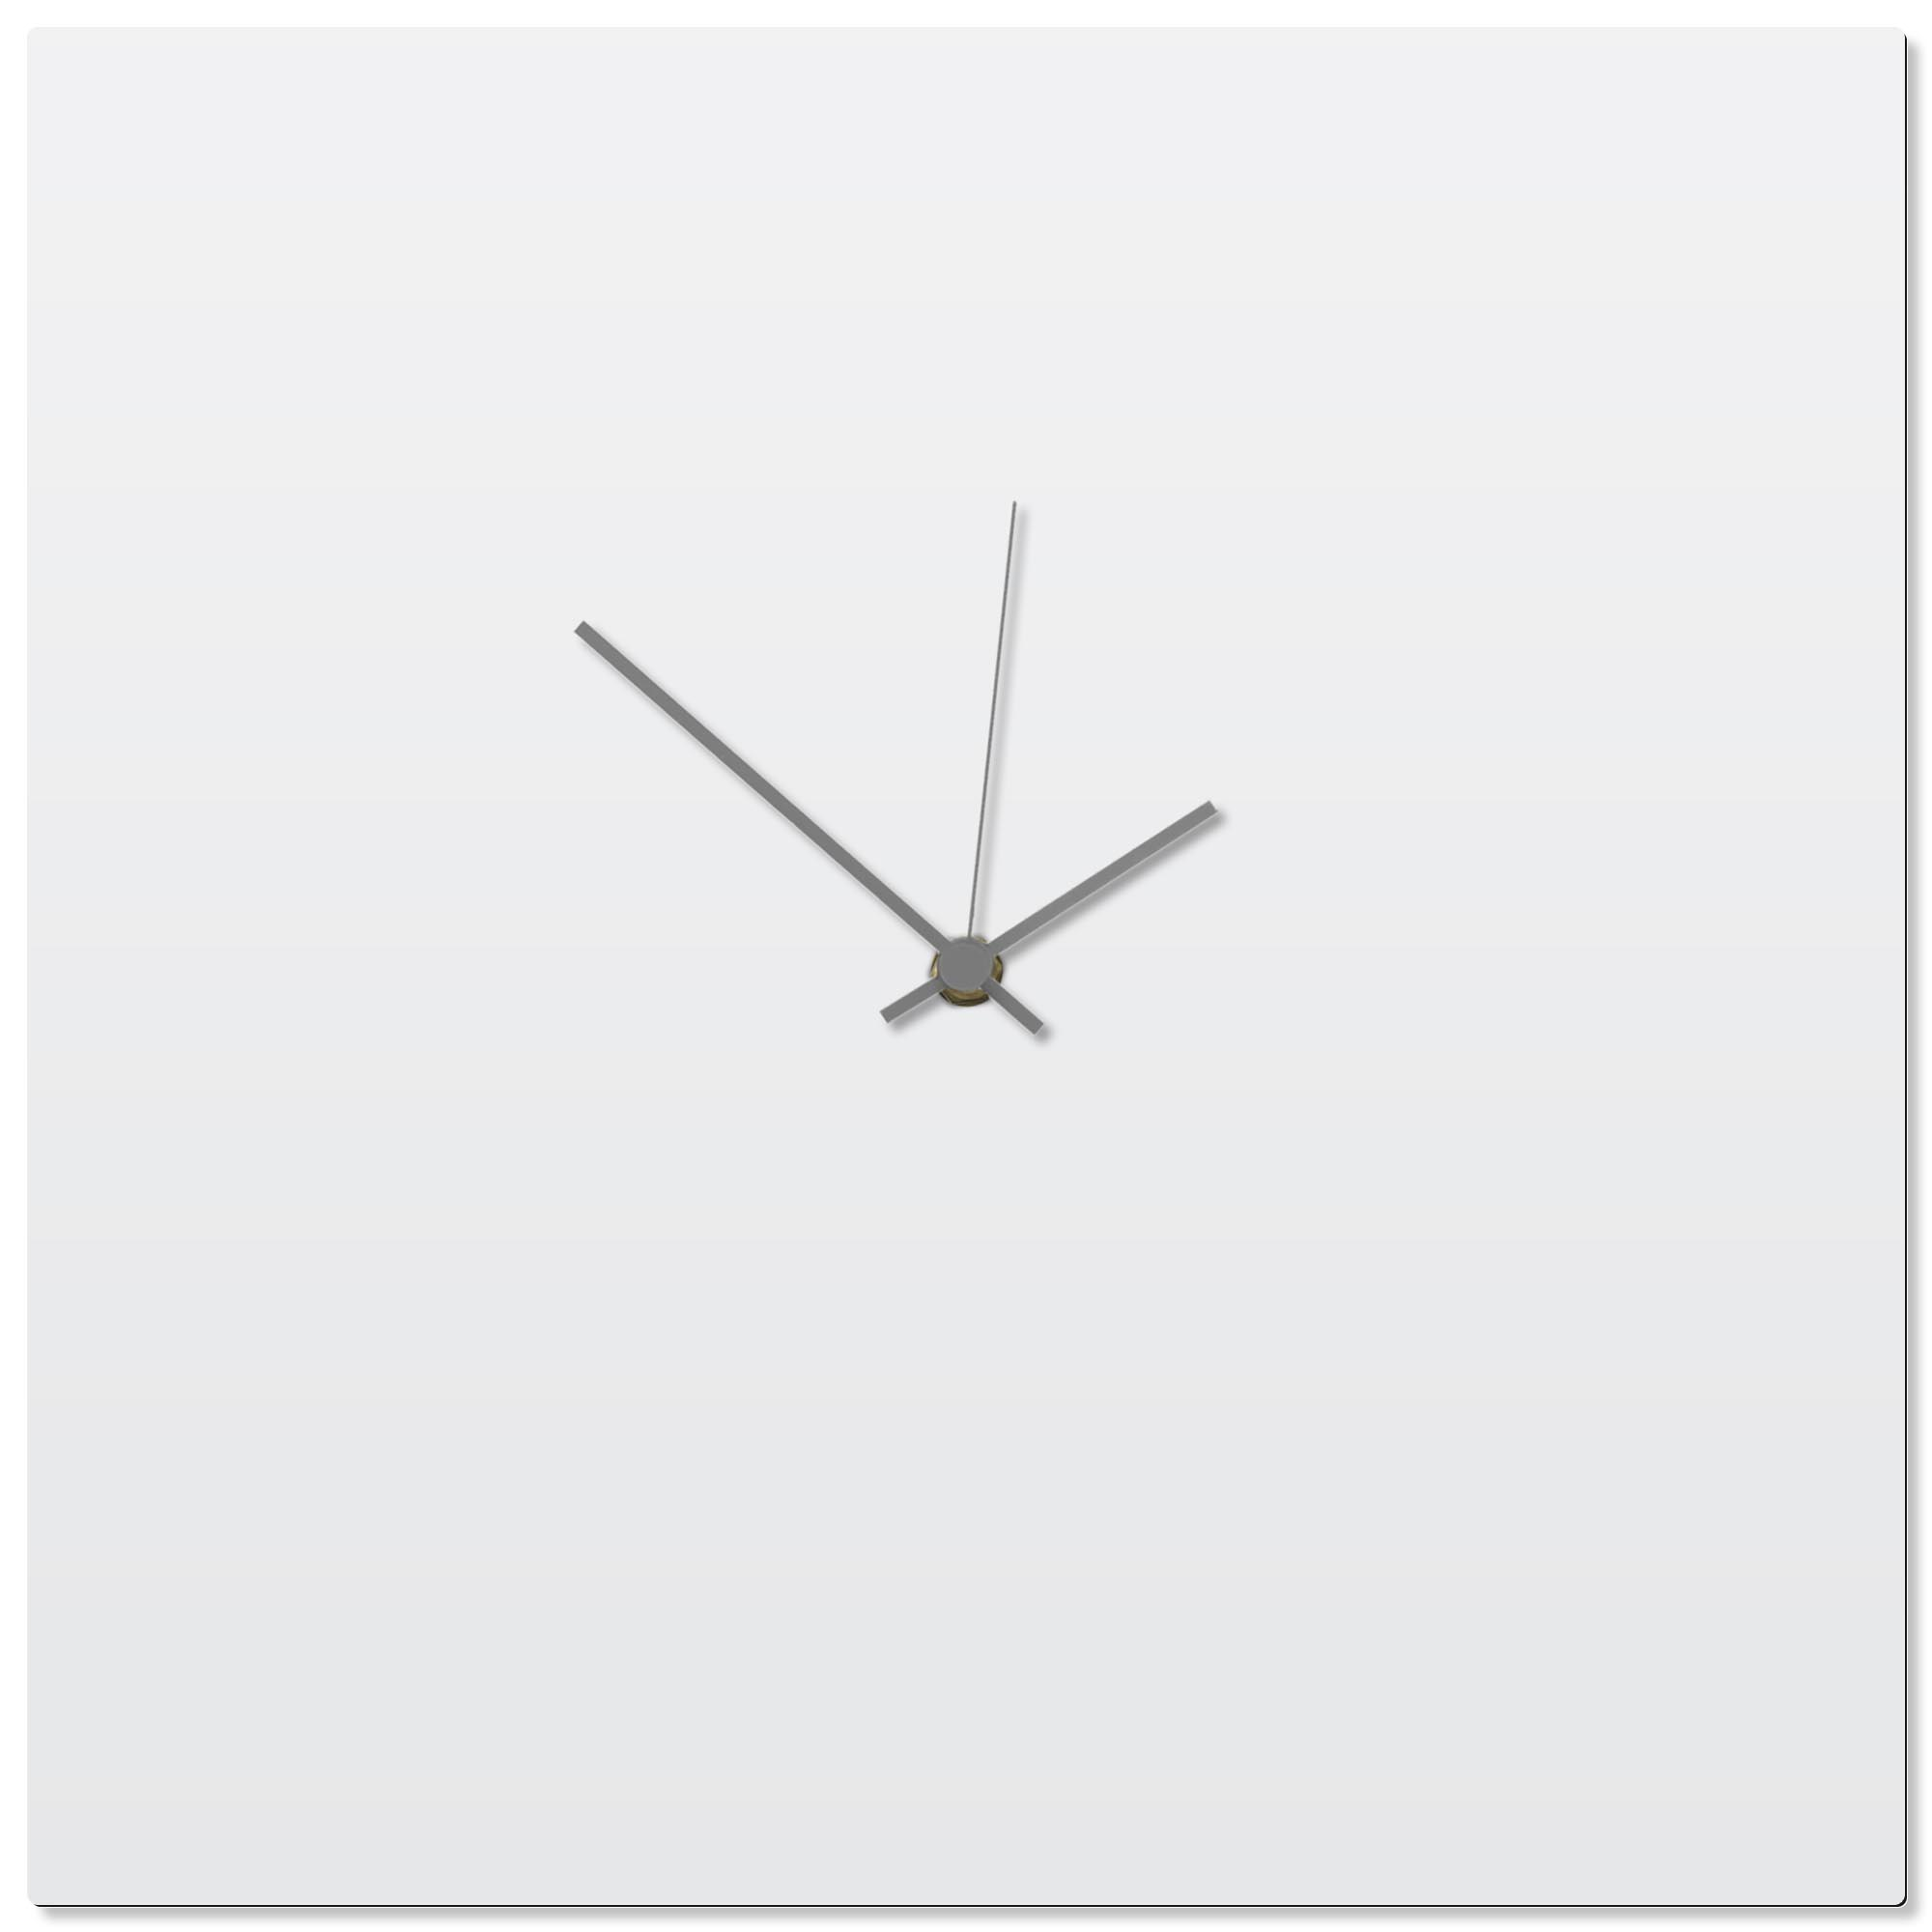 Whiteout Grey Square Clock 16x16in. Aluminum Polymetal